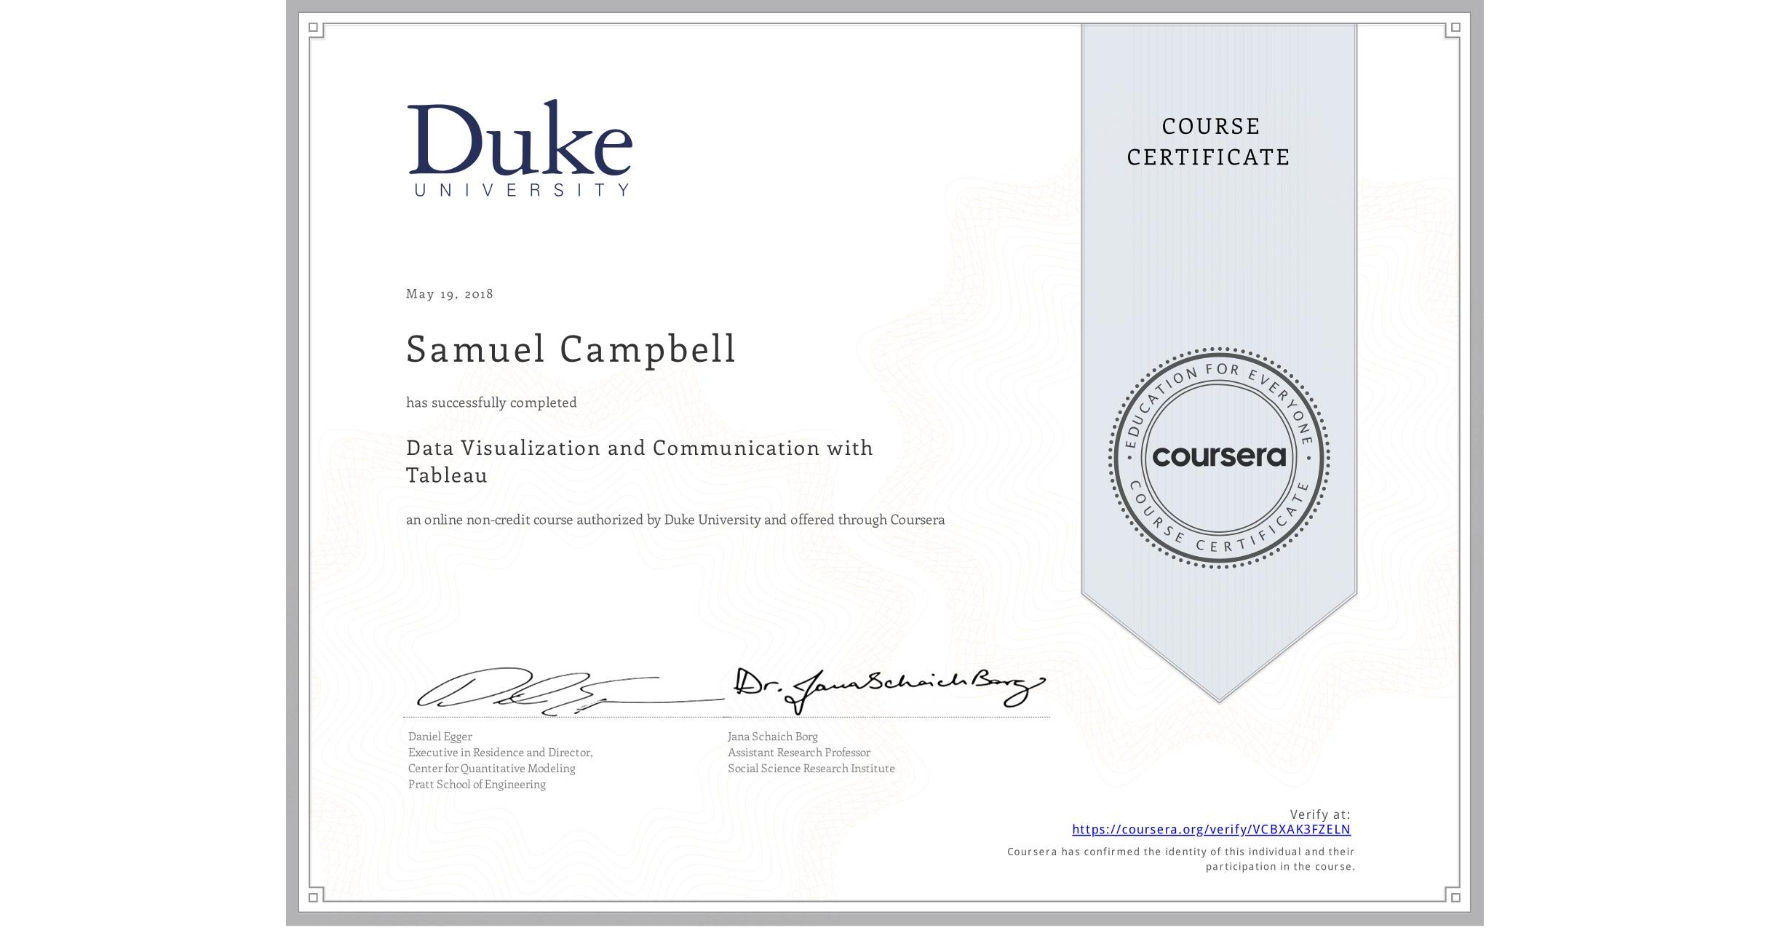 View certificate for Samuel Campbell , Data Visualization and Communication with Tableau, an online non-credit course authorized by Duke University and offered through Coursera